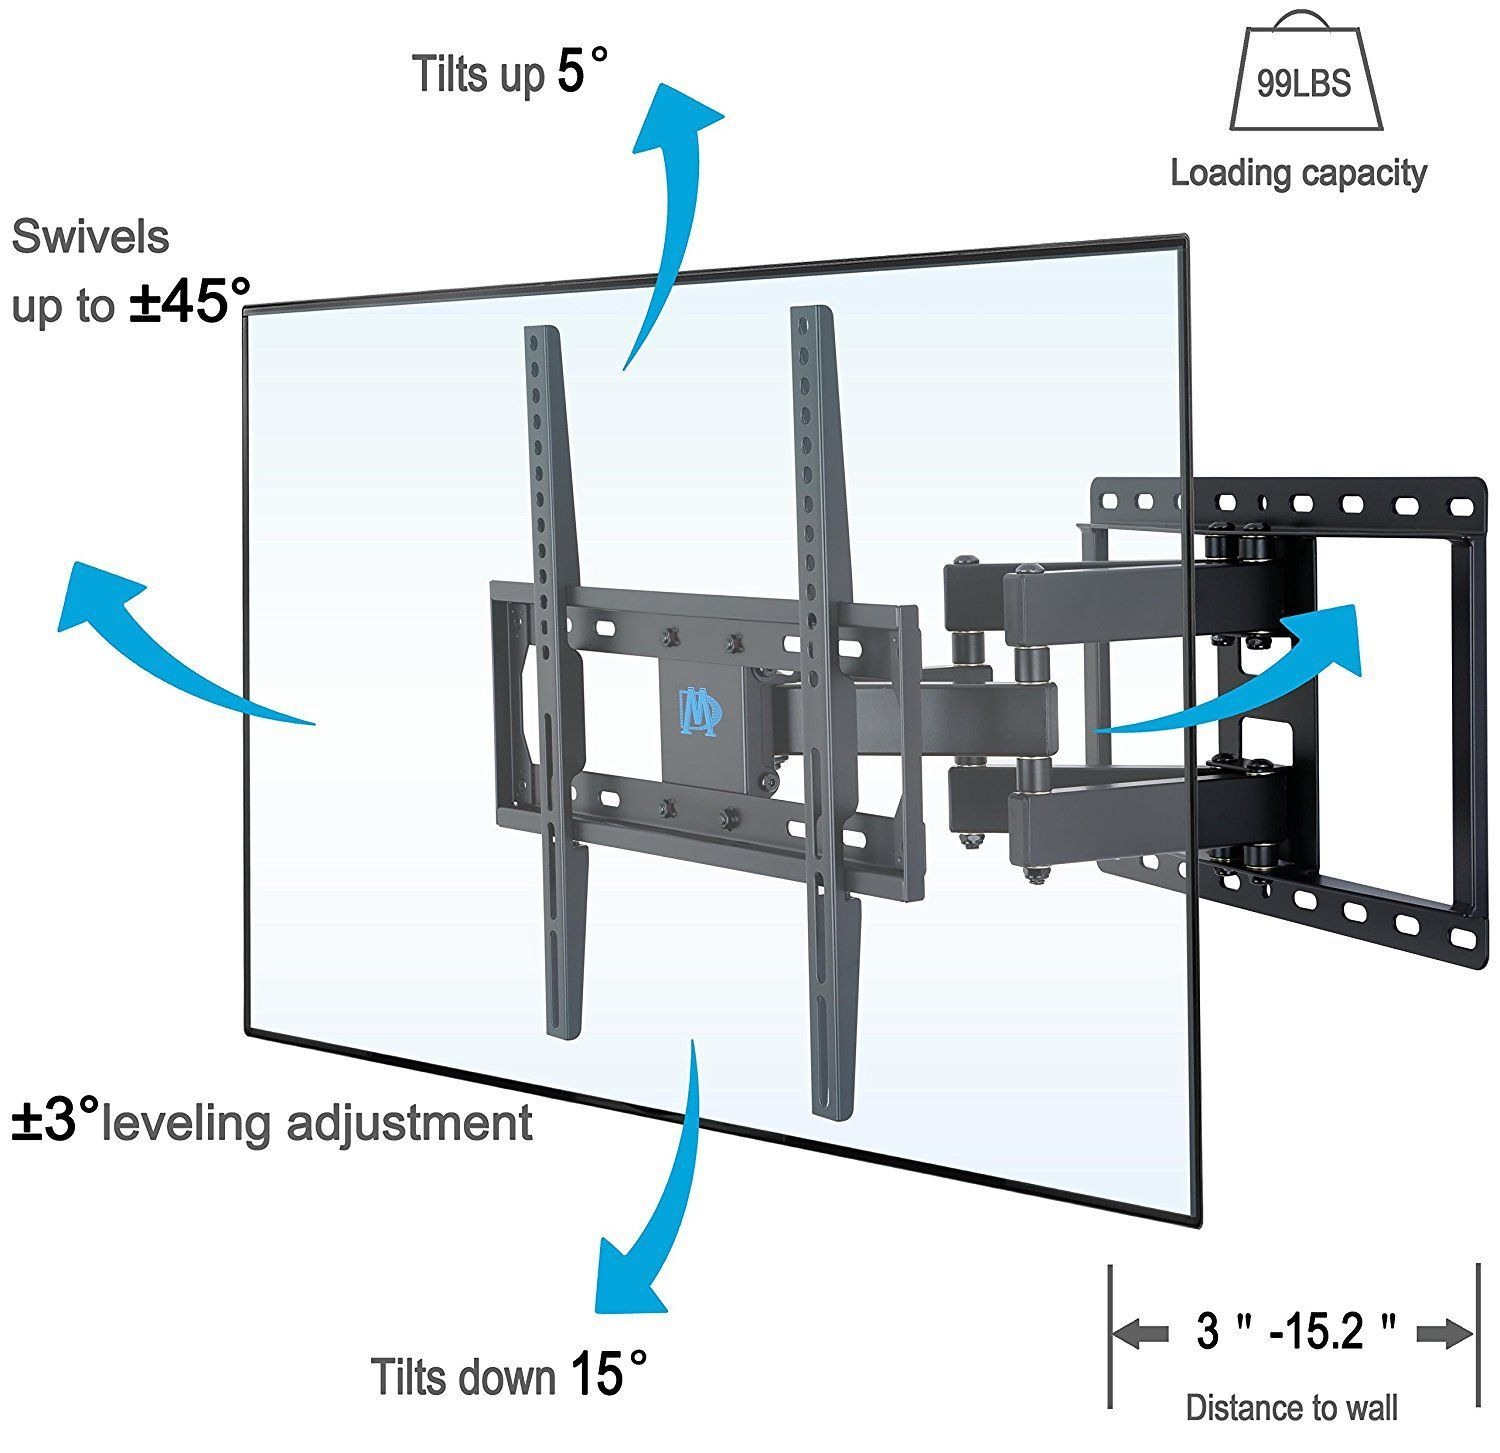 Amazon.com: Mounting Dream MD2380 TV Wall Mount Bracket For Most 26 55 Inch  LED, LCD, OLED And Plasma Flat Screen TV, With Full Motion Swivel  Articulating ...